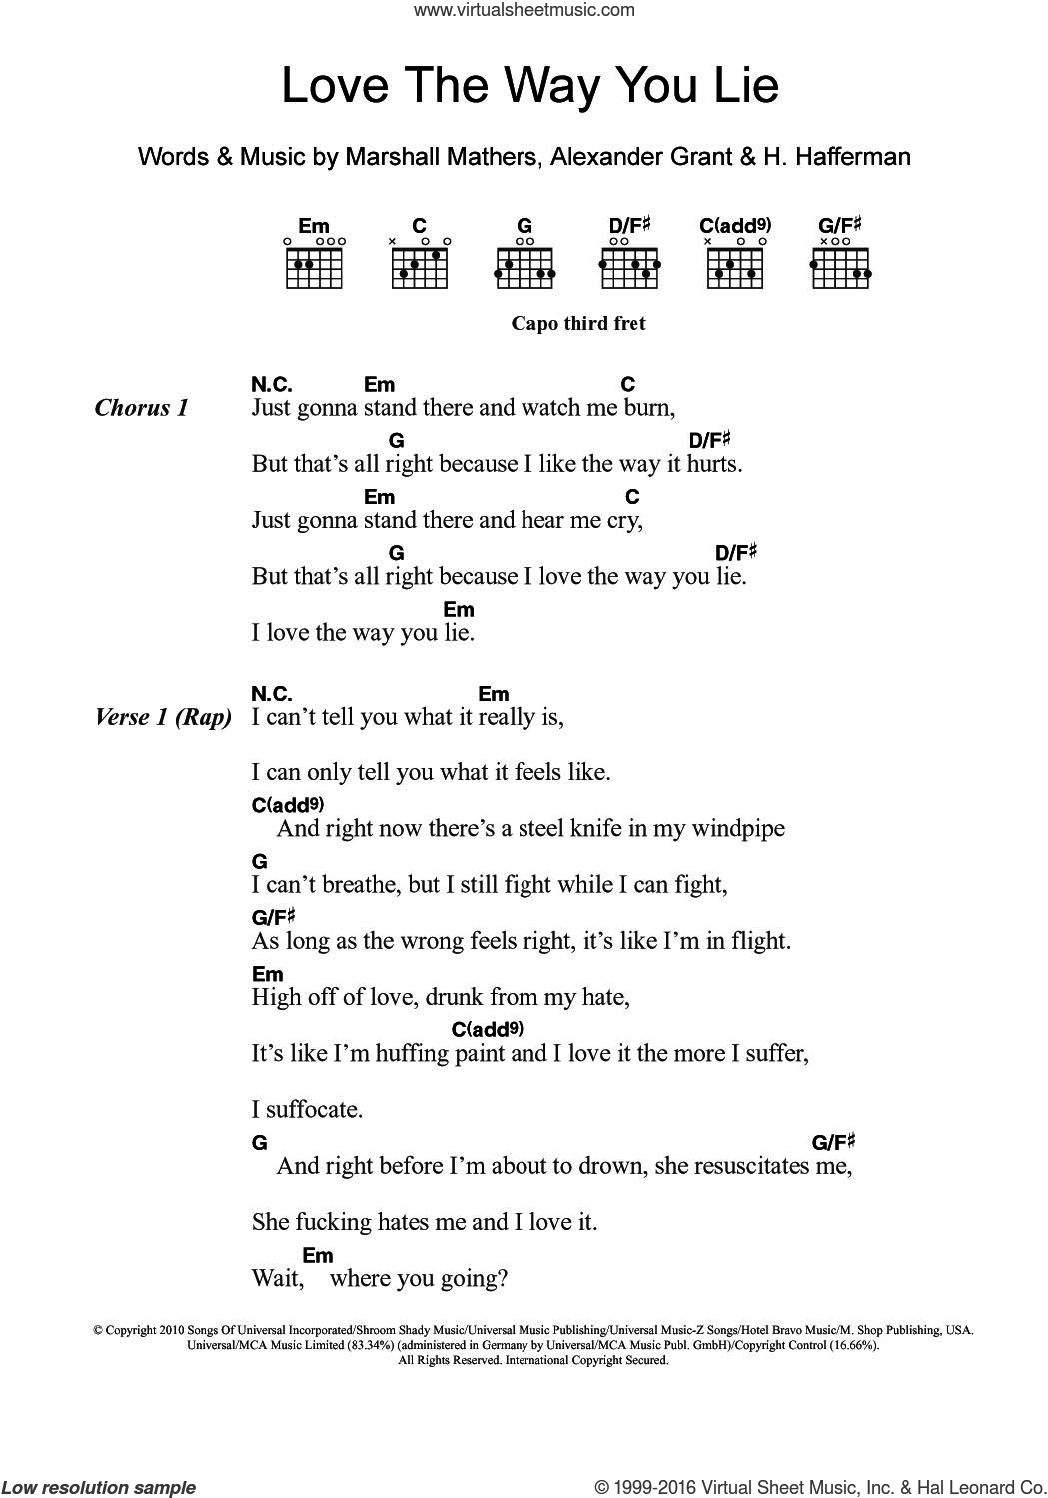 Love The Way You Lie (featuring Rihanna) sheet music for guitar (chords) by Eminem, Rihanna, Alexander Grant, H. Hafferman and Marshall Mathers, intermediate skill level